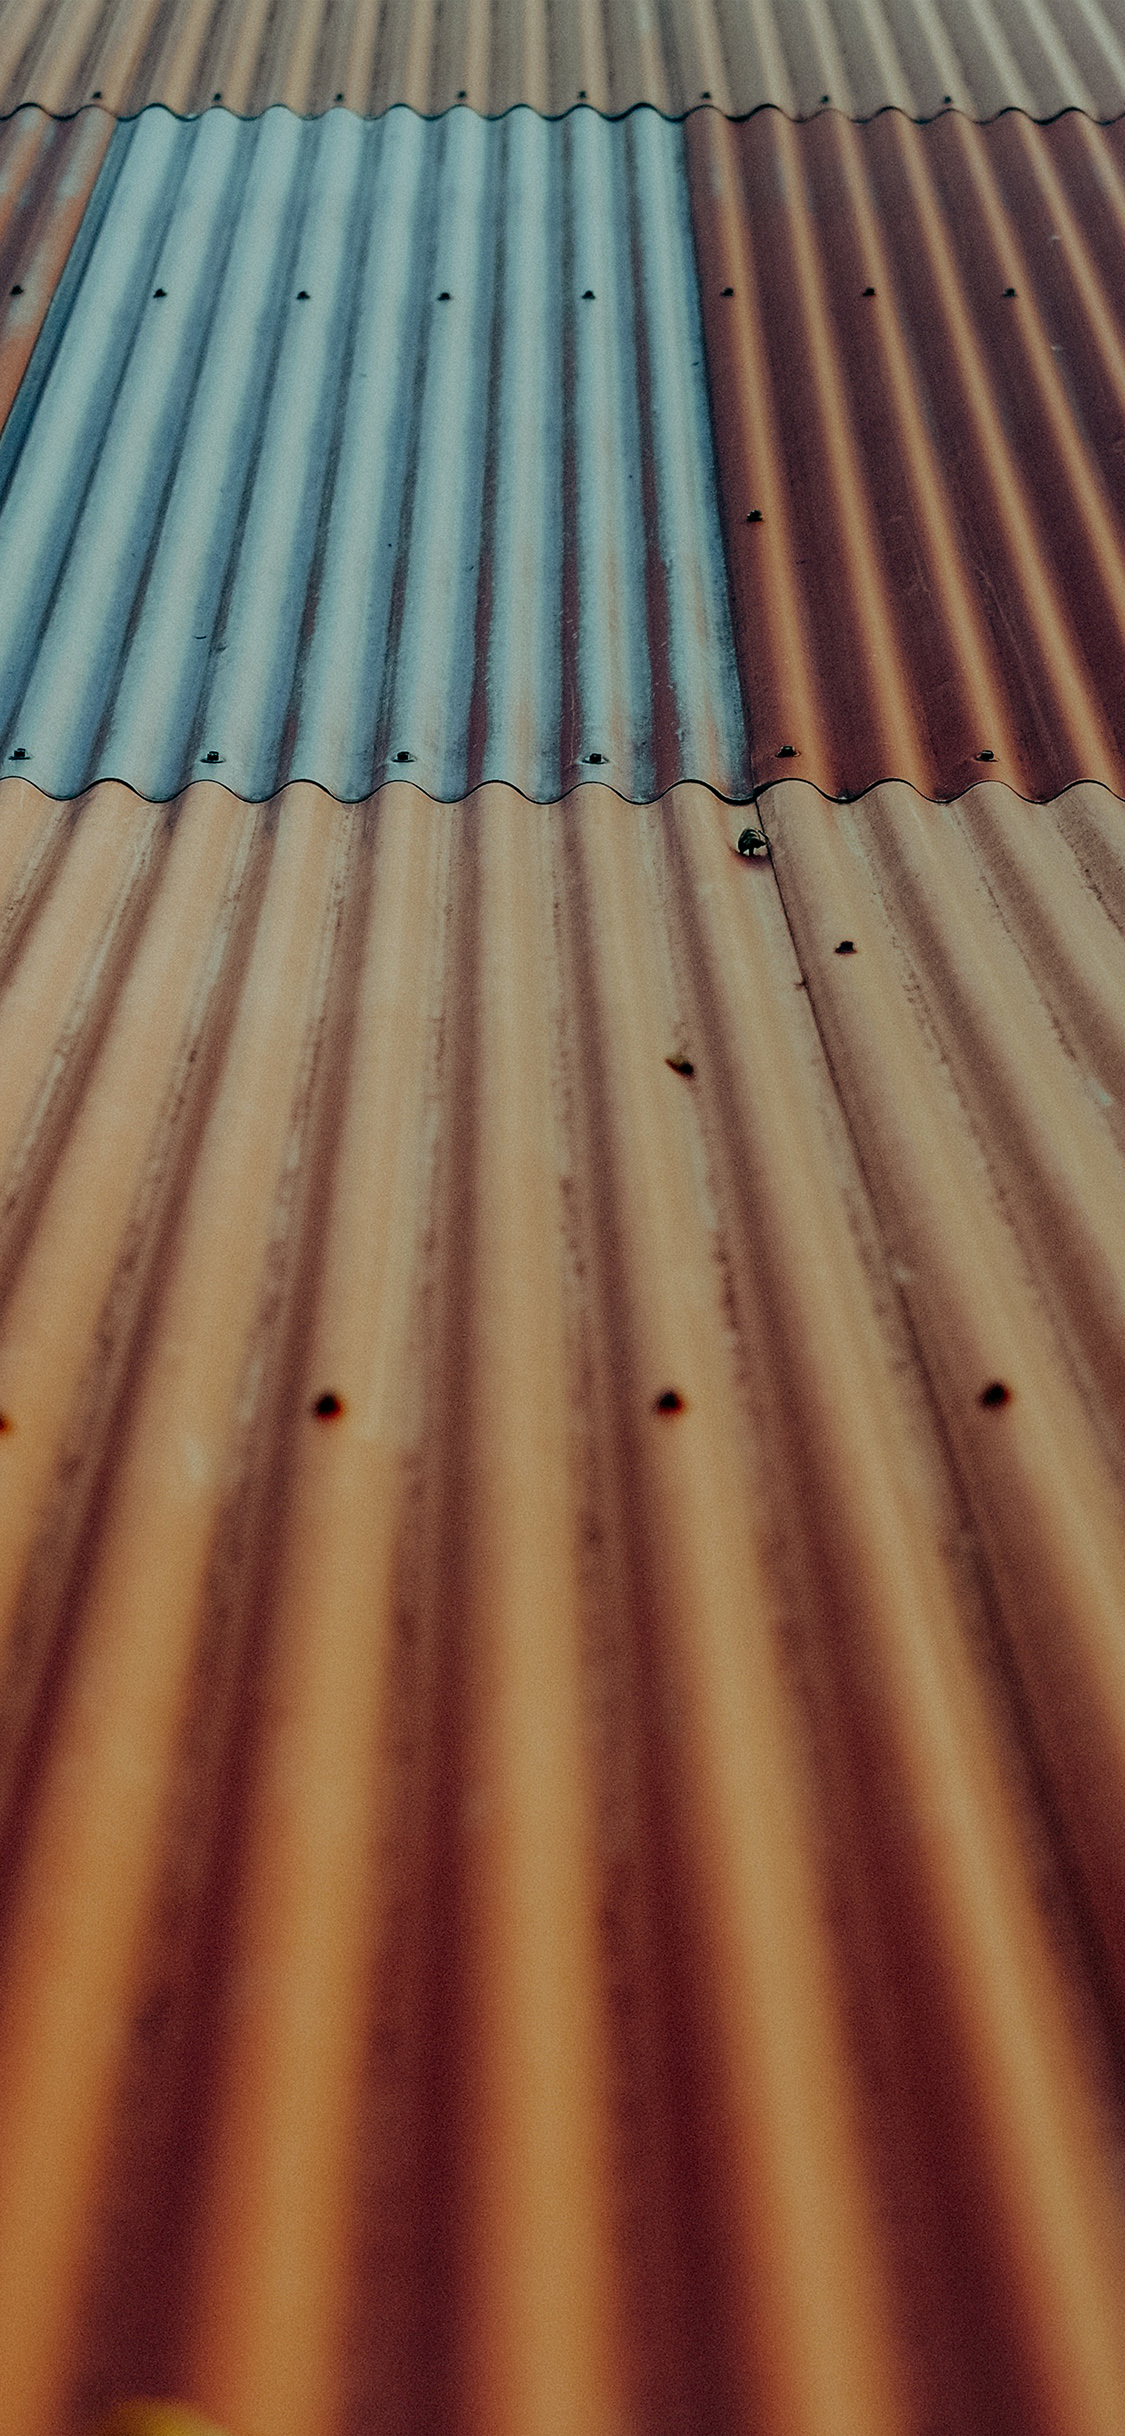 iPhonexpapers.com-Apple-iPhone-wallpaper-vr08-old-steel-roof-city-pattern-dark